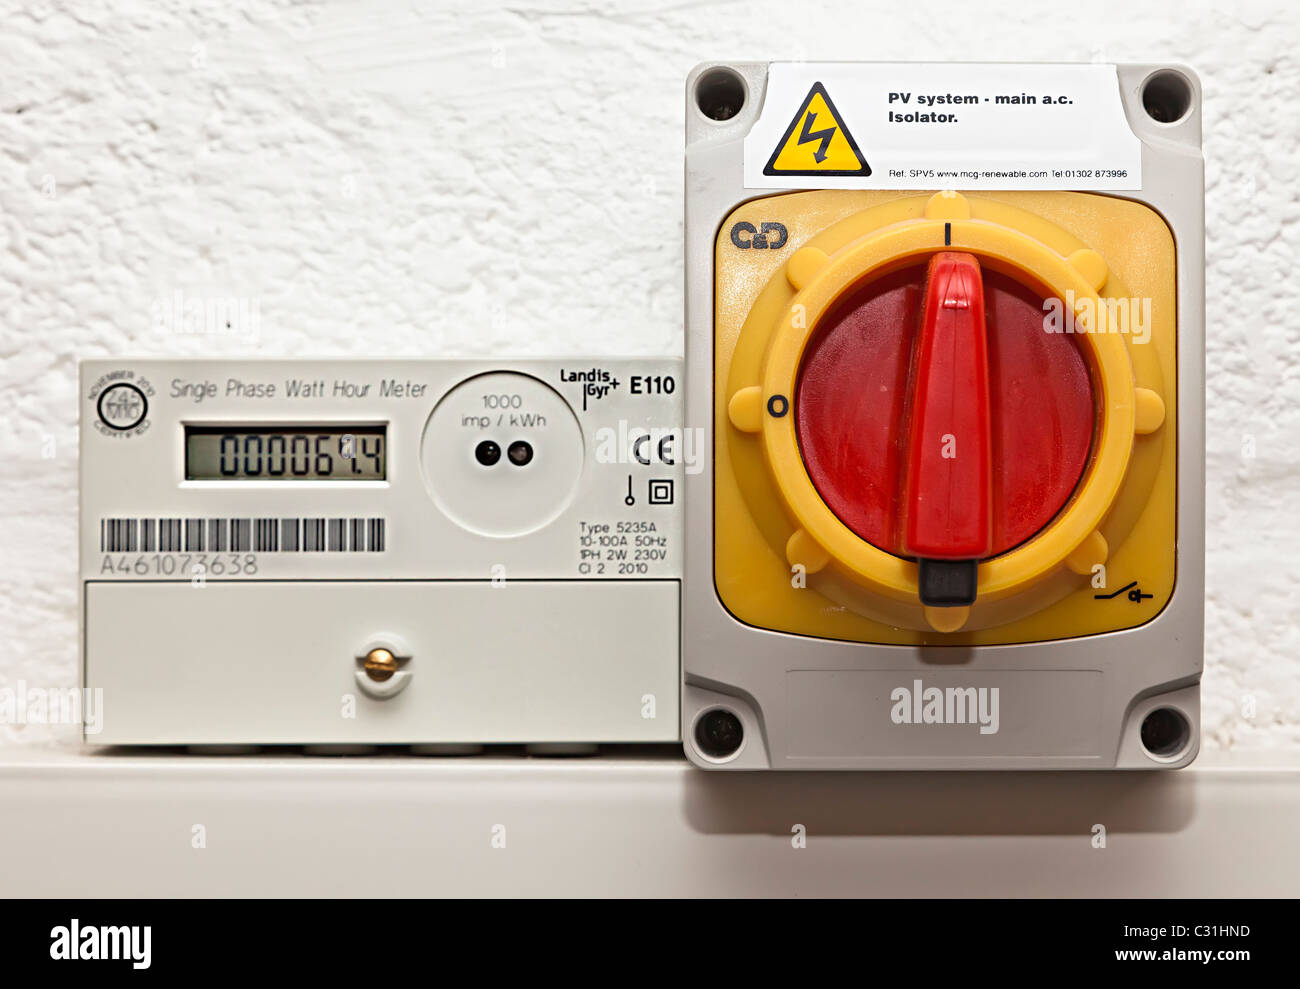 Solar PV isolation switch and generation meter Wales UK - Stock Image